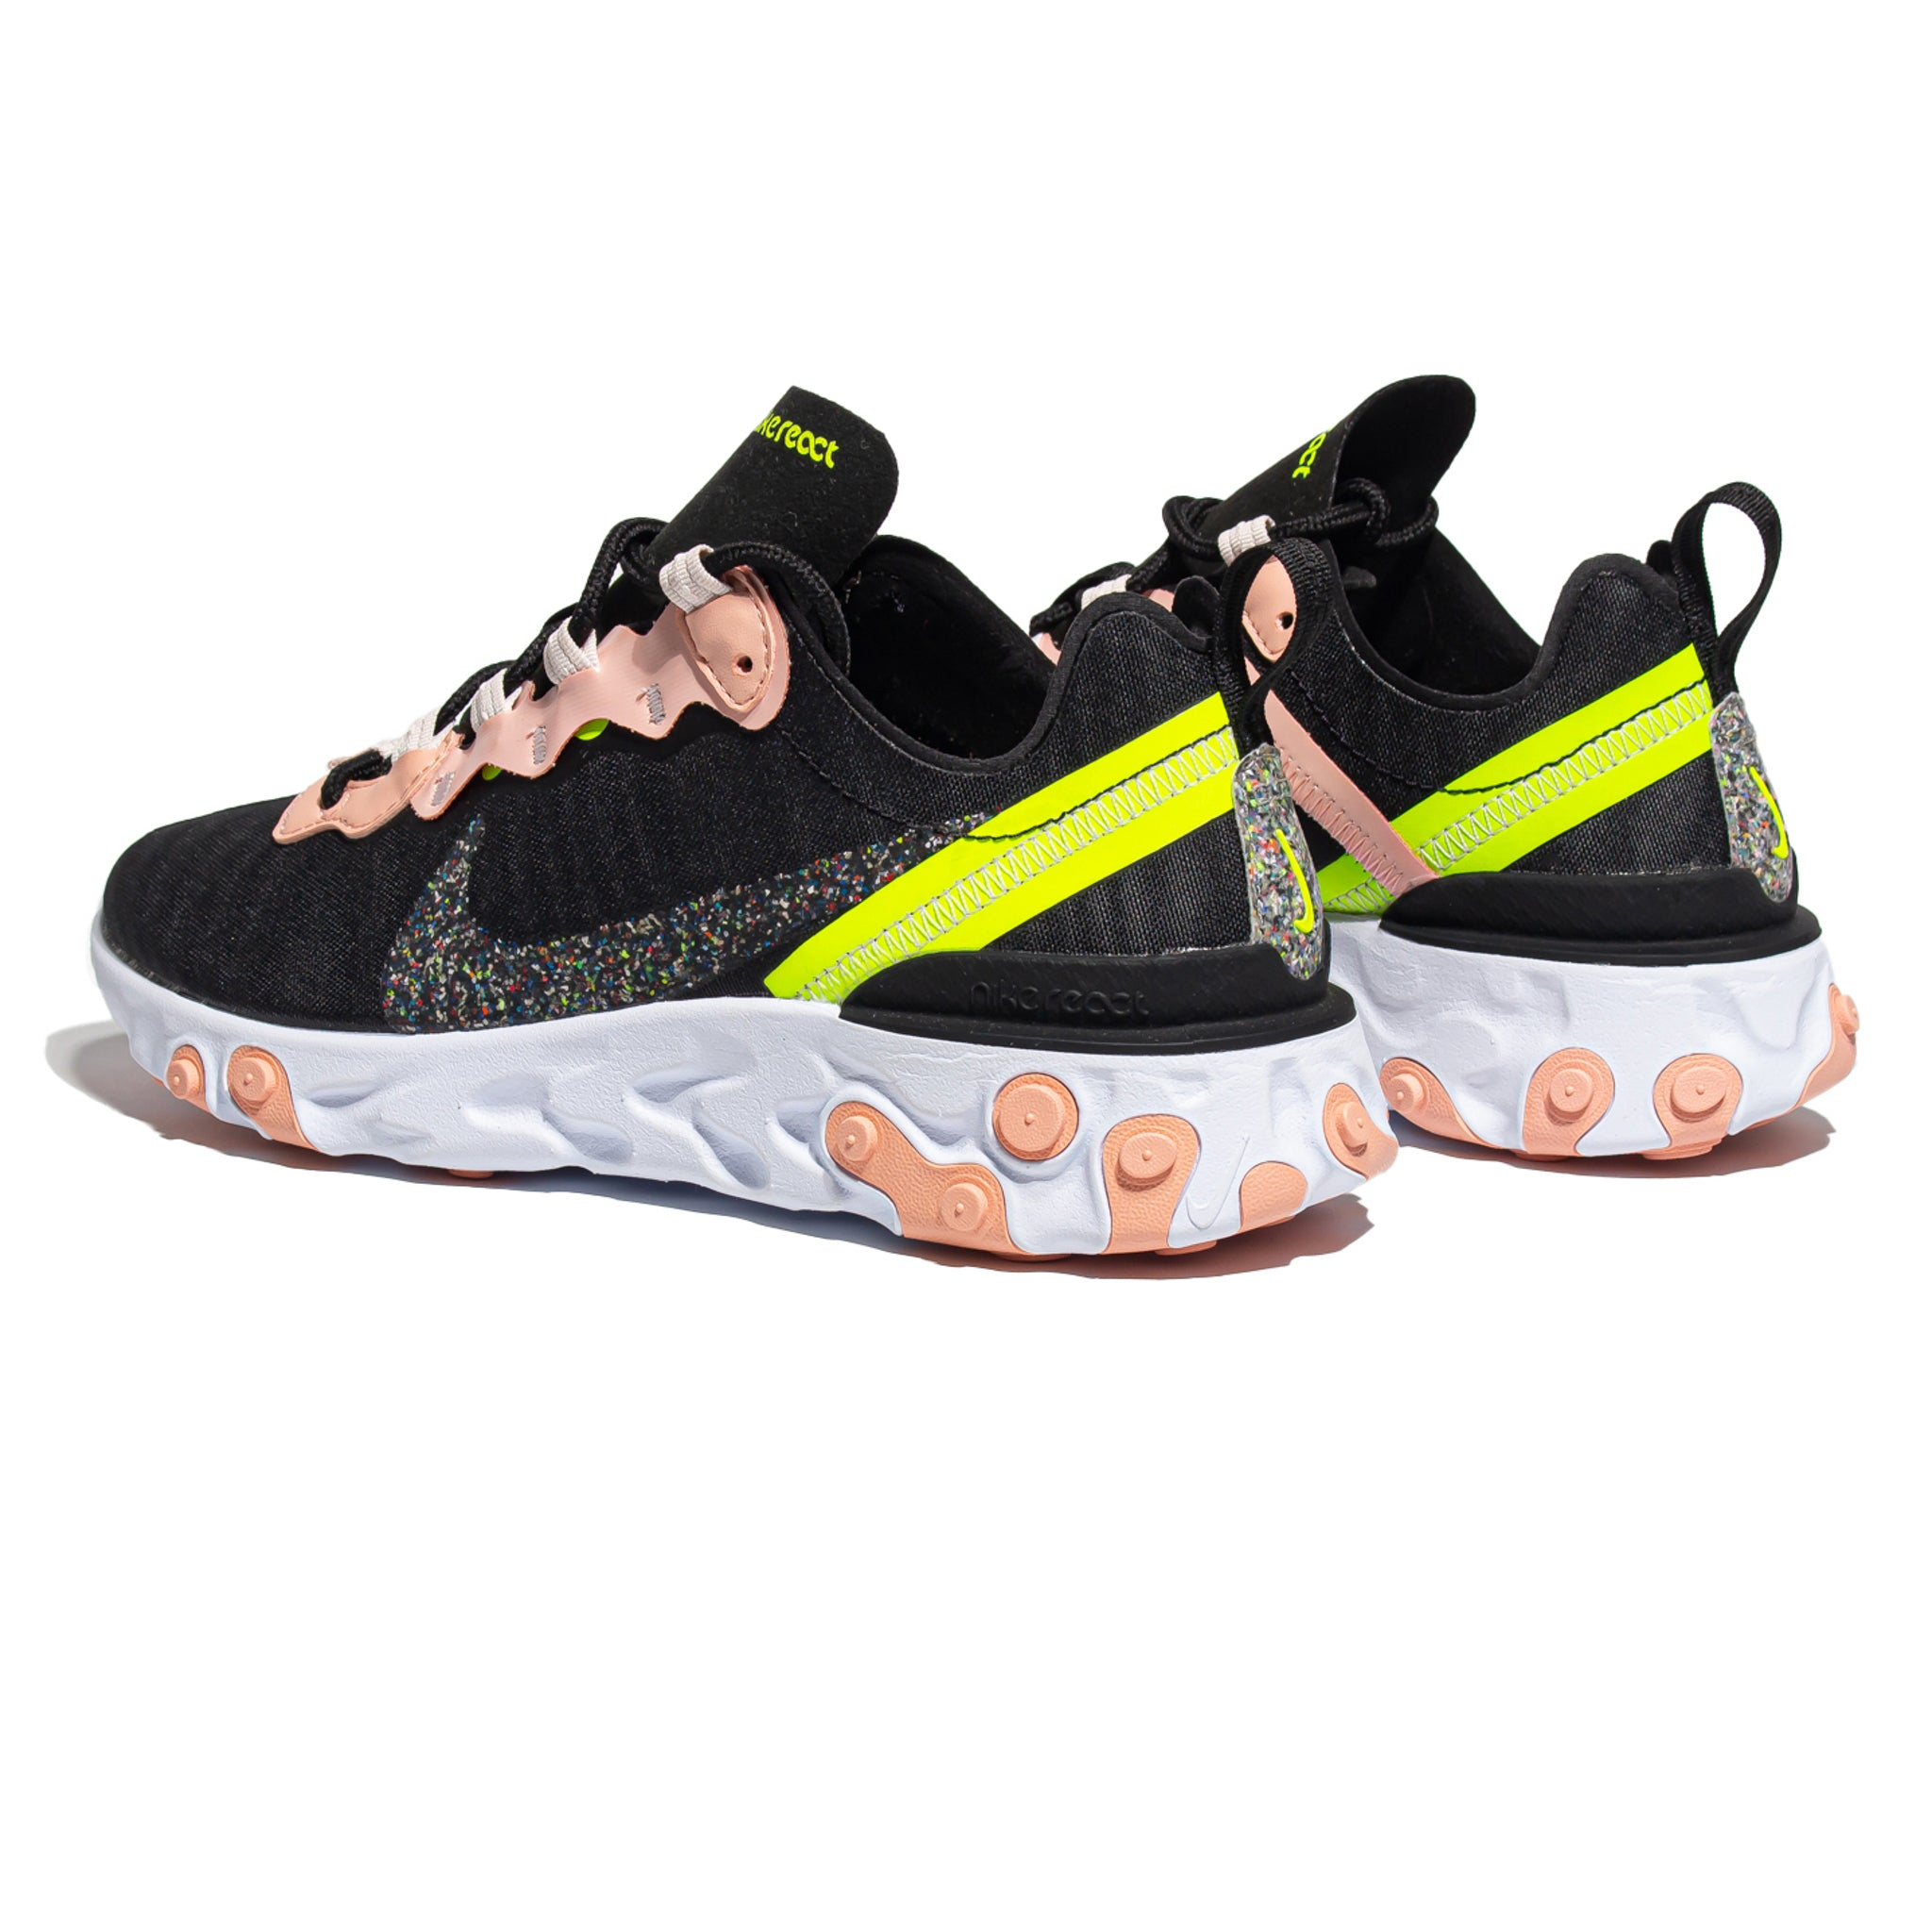 Nike React Element 55 PRM 'Coral Stardust'